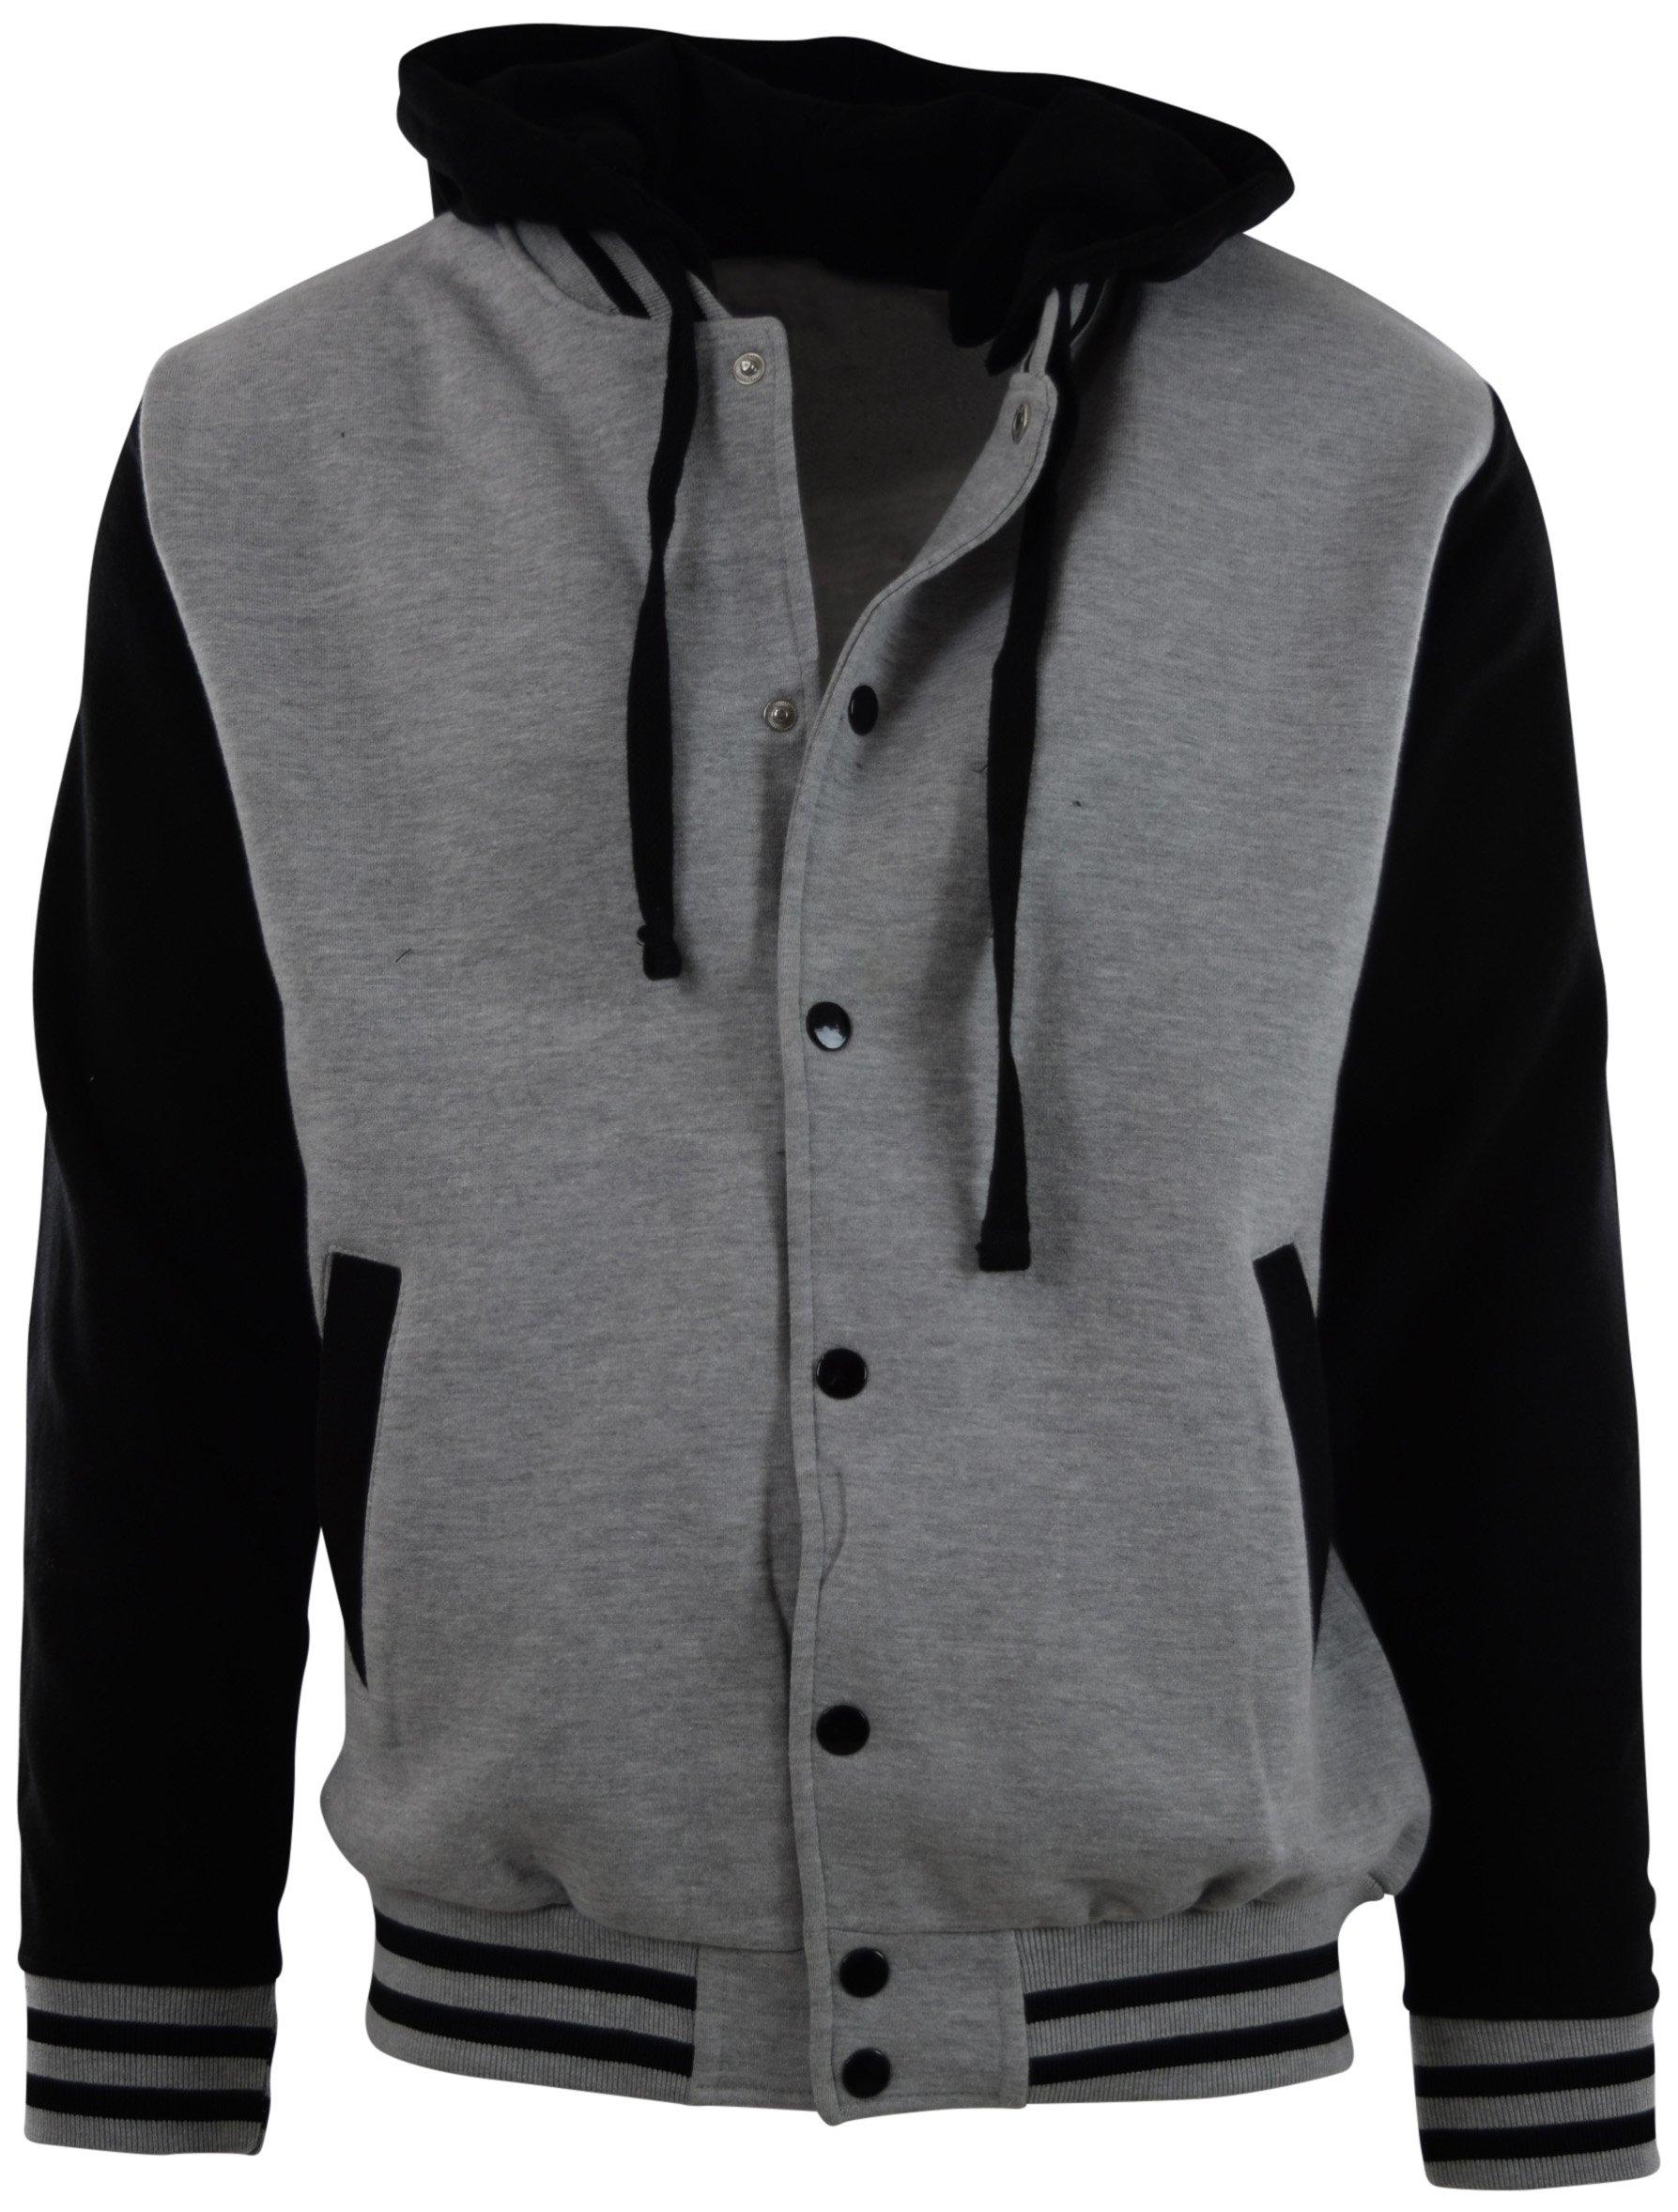 ChoiceApparel Mens Baseball Varsity Jacket with Detachable Hoodie (S, BJ01-Grey/Black)